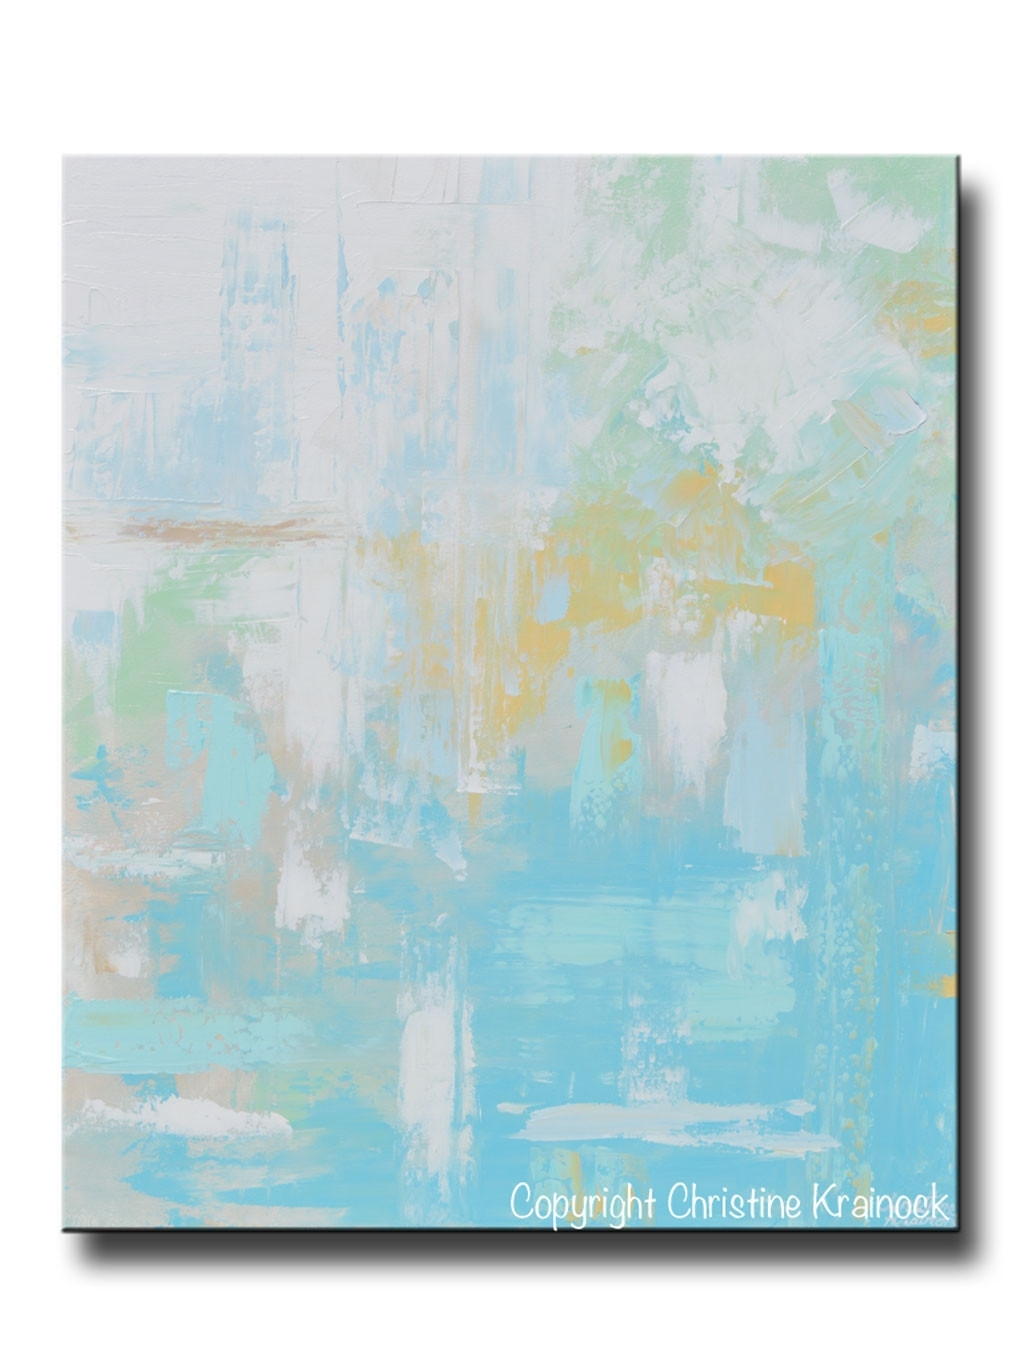 Original Art Light Blue Abstract Painting Aqua Blue Green Yellow Pertaining To 2018 Ottawa Abstract Wall Art (View 14 of 20)